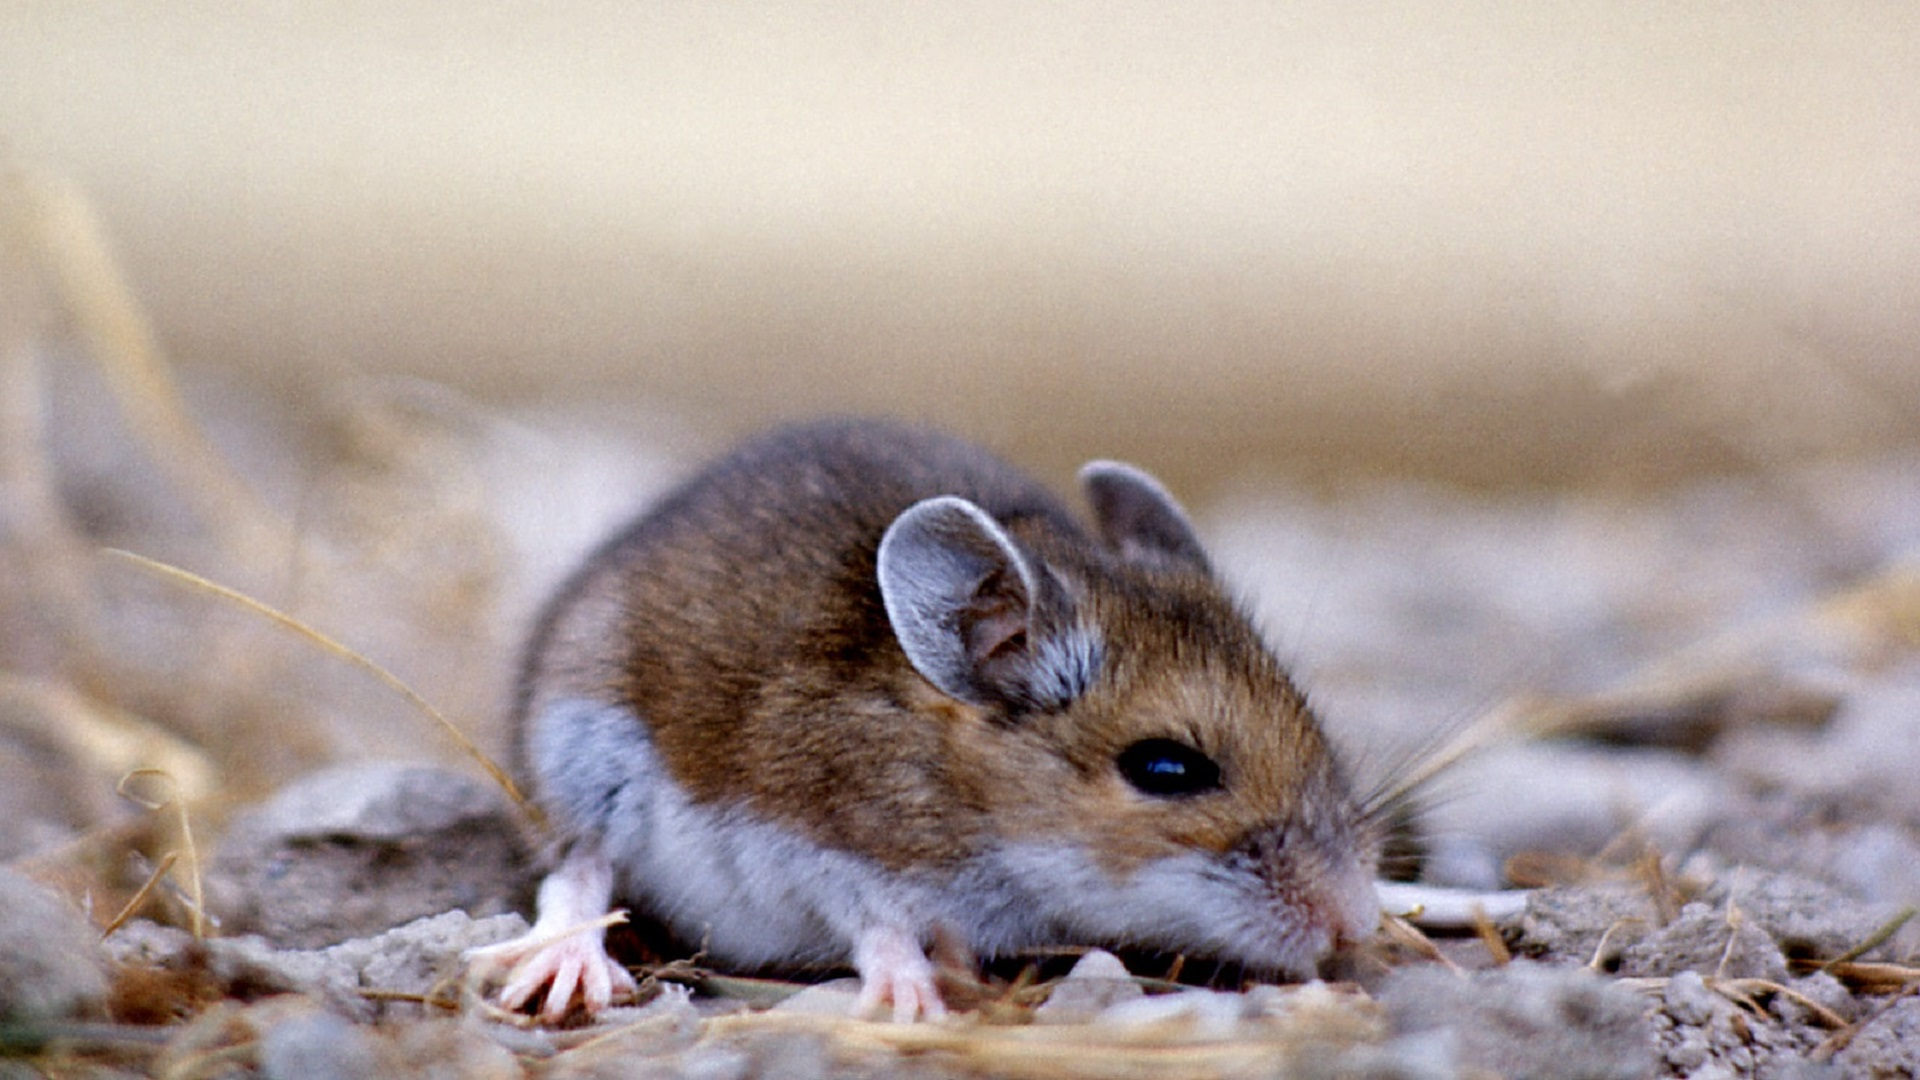 Be aware of the risks of contracting hantavirus says AHS ...